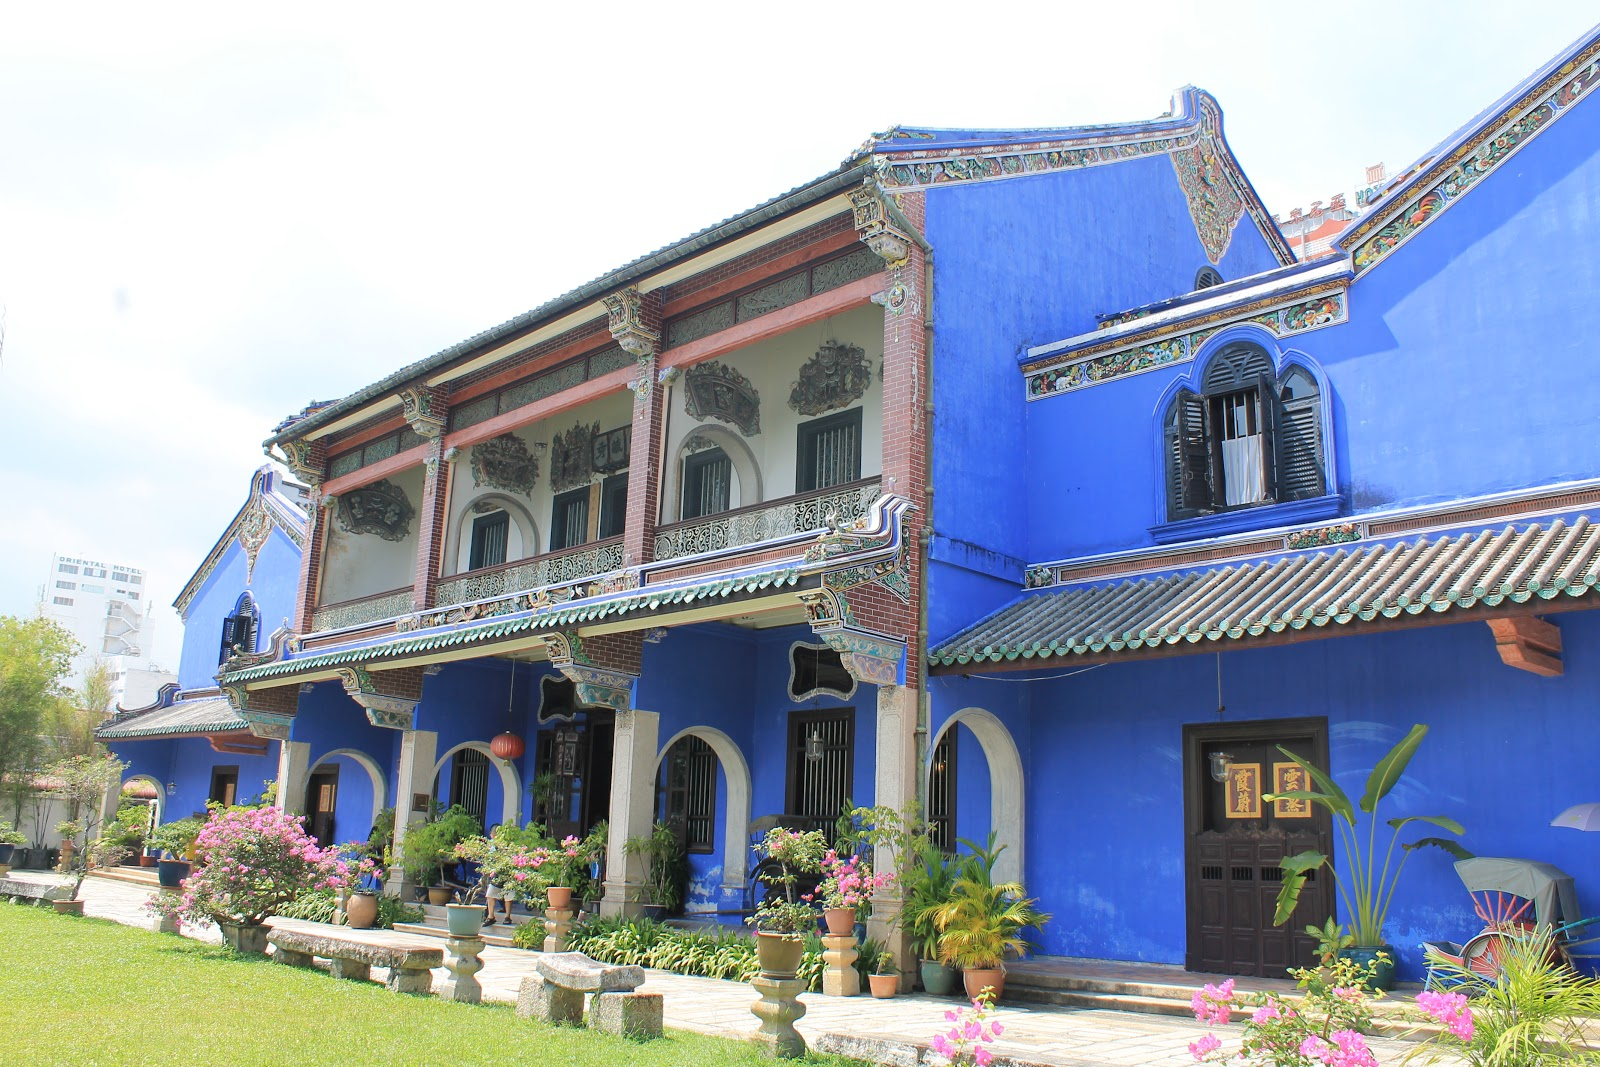 Penang Private Tour Guide